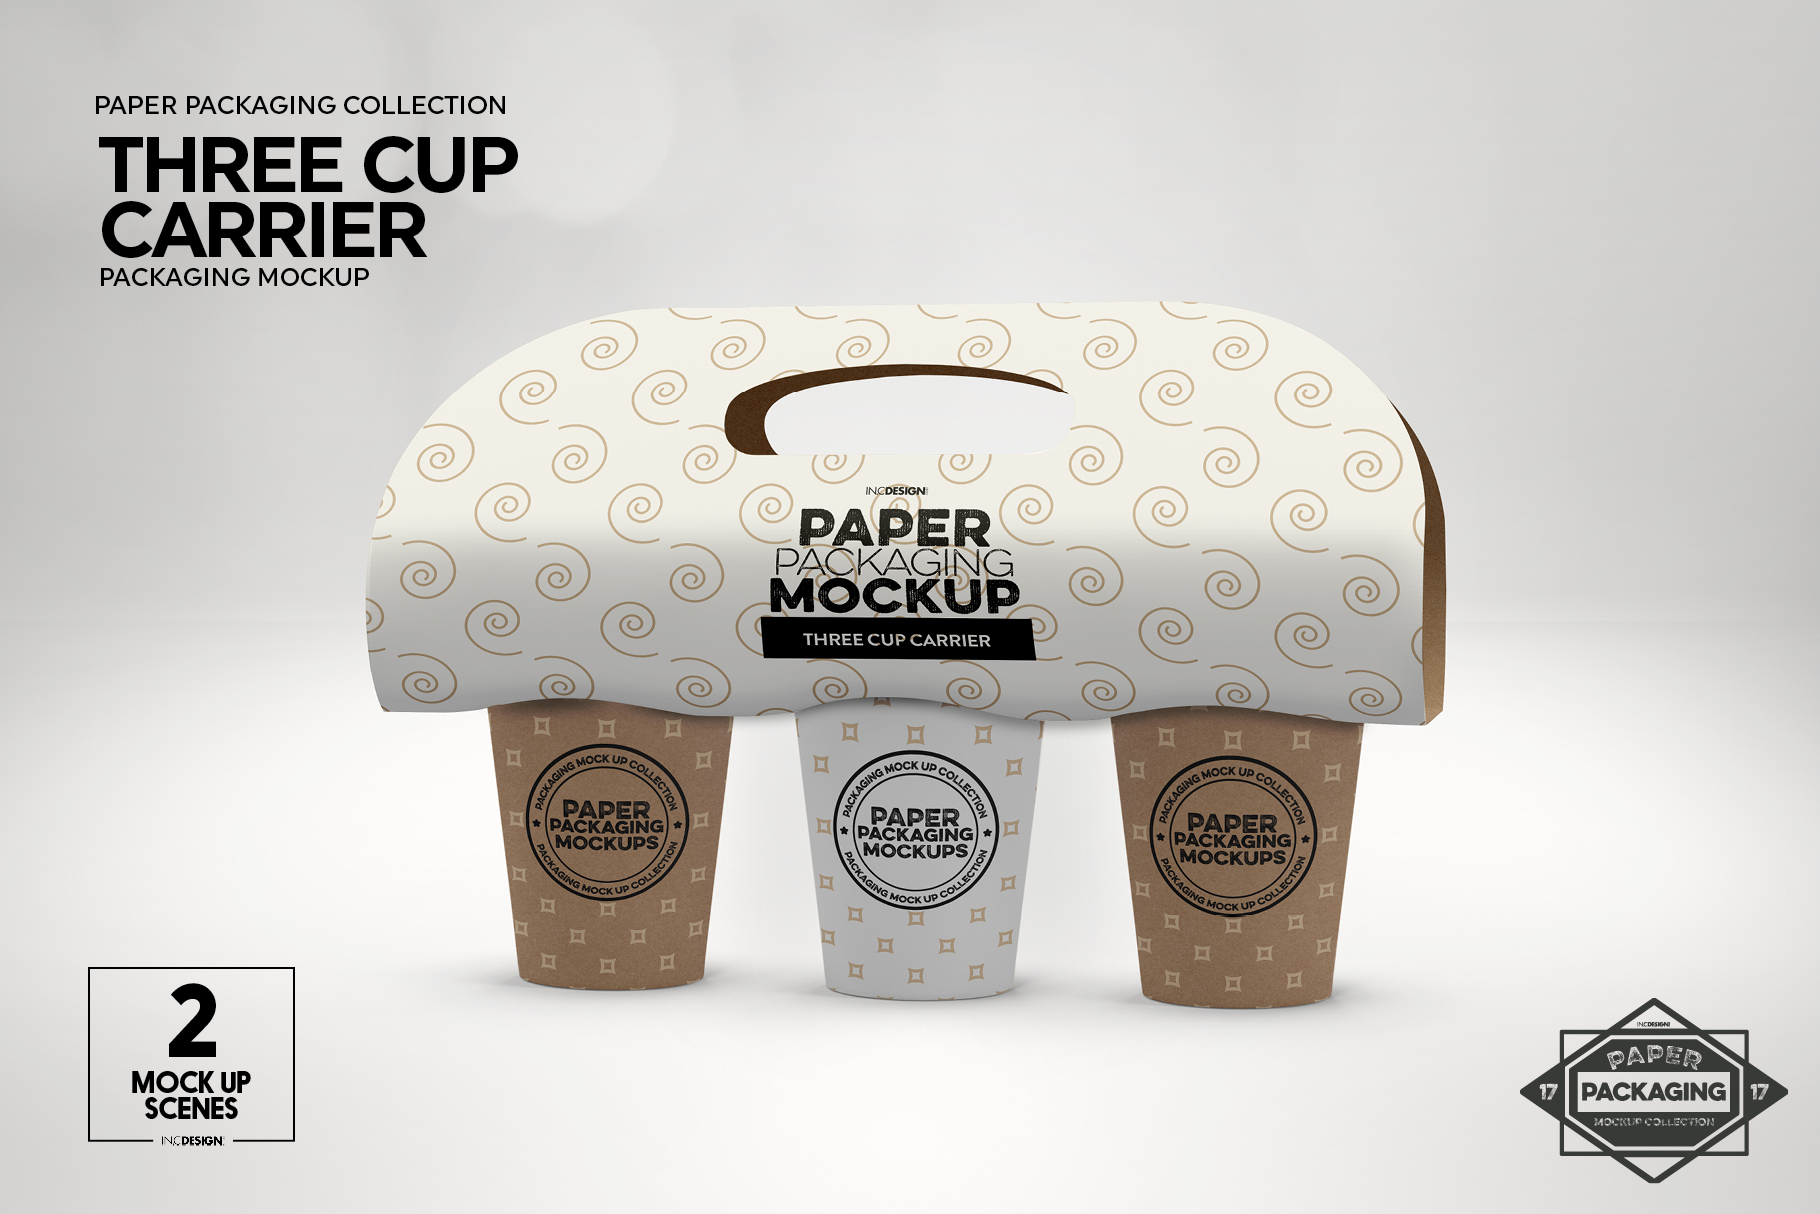 Three Cup Paper Carrier Packaging Mockup example image 11